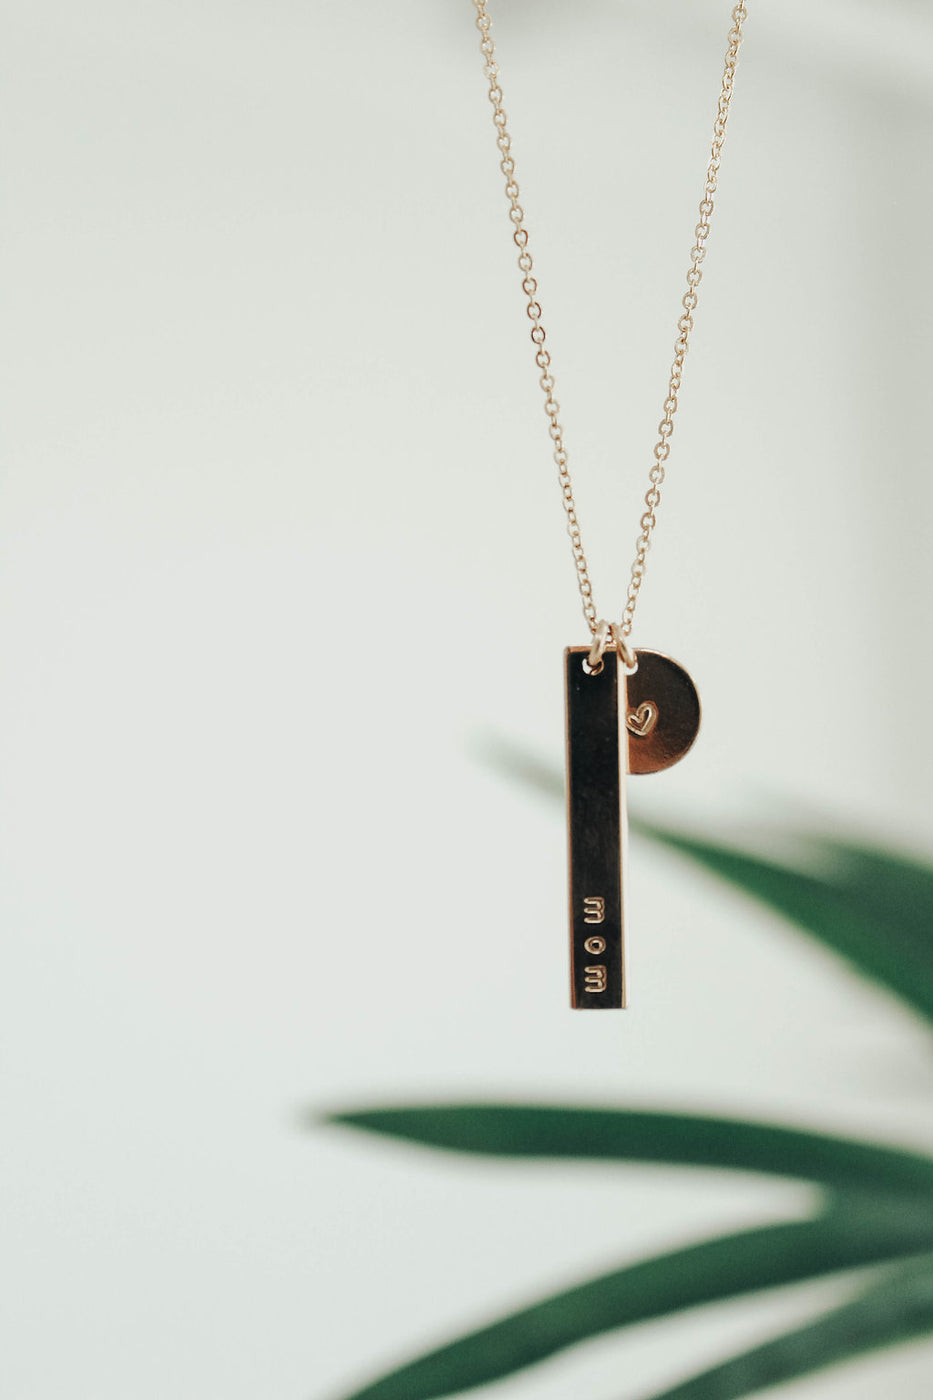 Mom + Co Necklace In Gold | ROOLEE